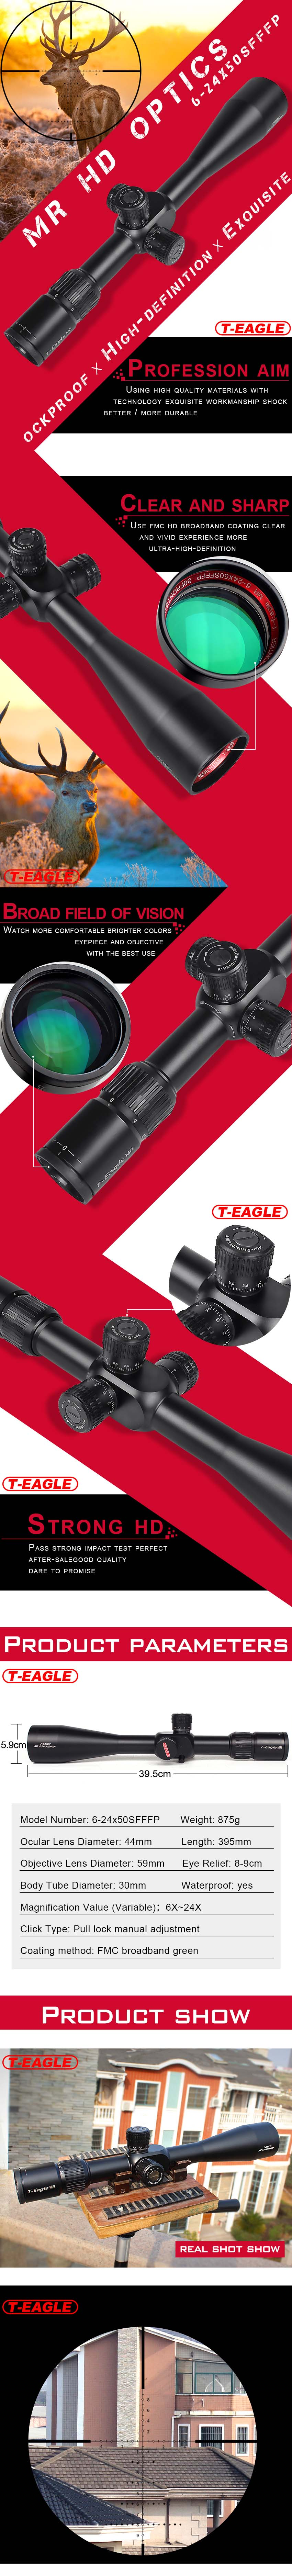 T-Eagle MR SF FFP 6-24x50 Tactical Red Dot Hunting Rifle Scopes pic-1